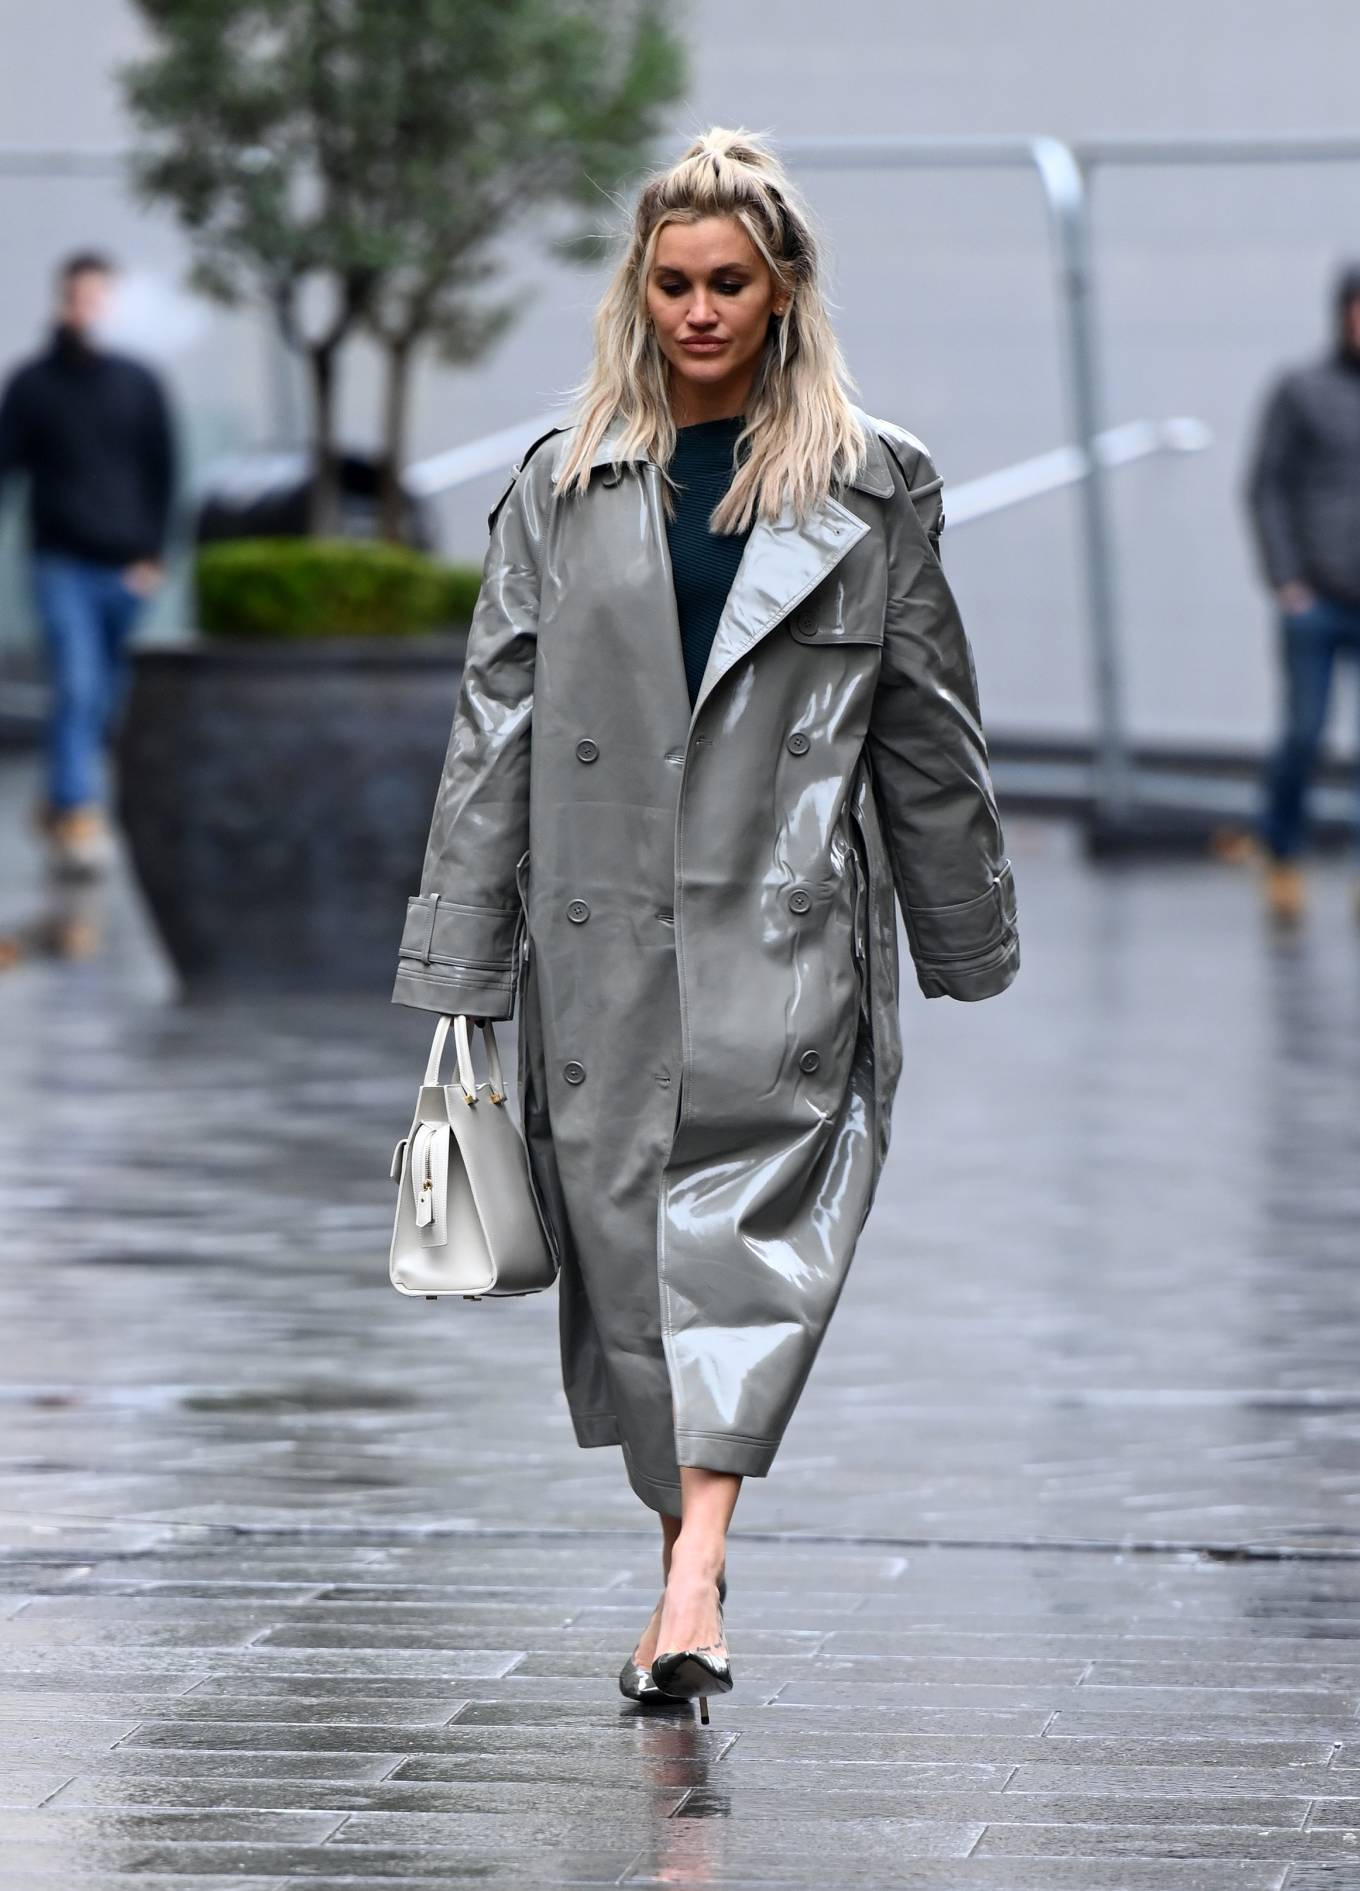 Ashley Roberts 2020 : Ashley Roberts – Looks chic in silver coat and pencil skirt in London-06